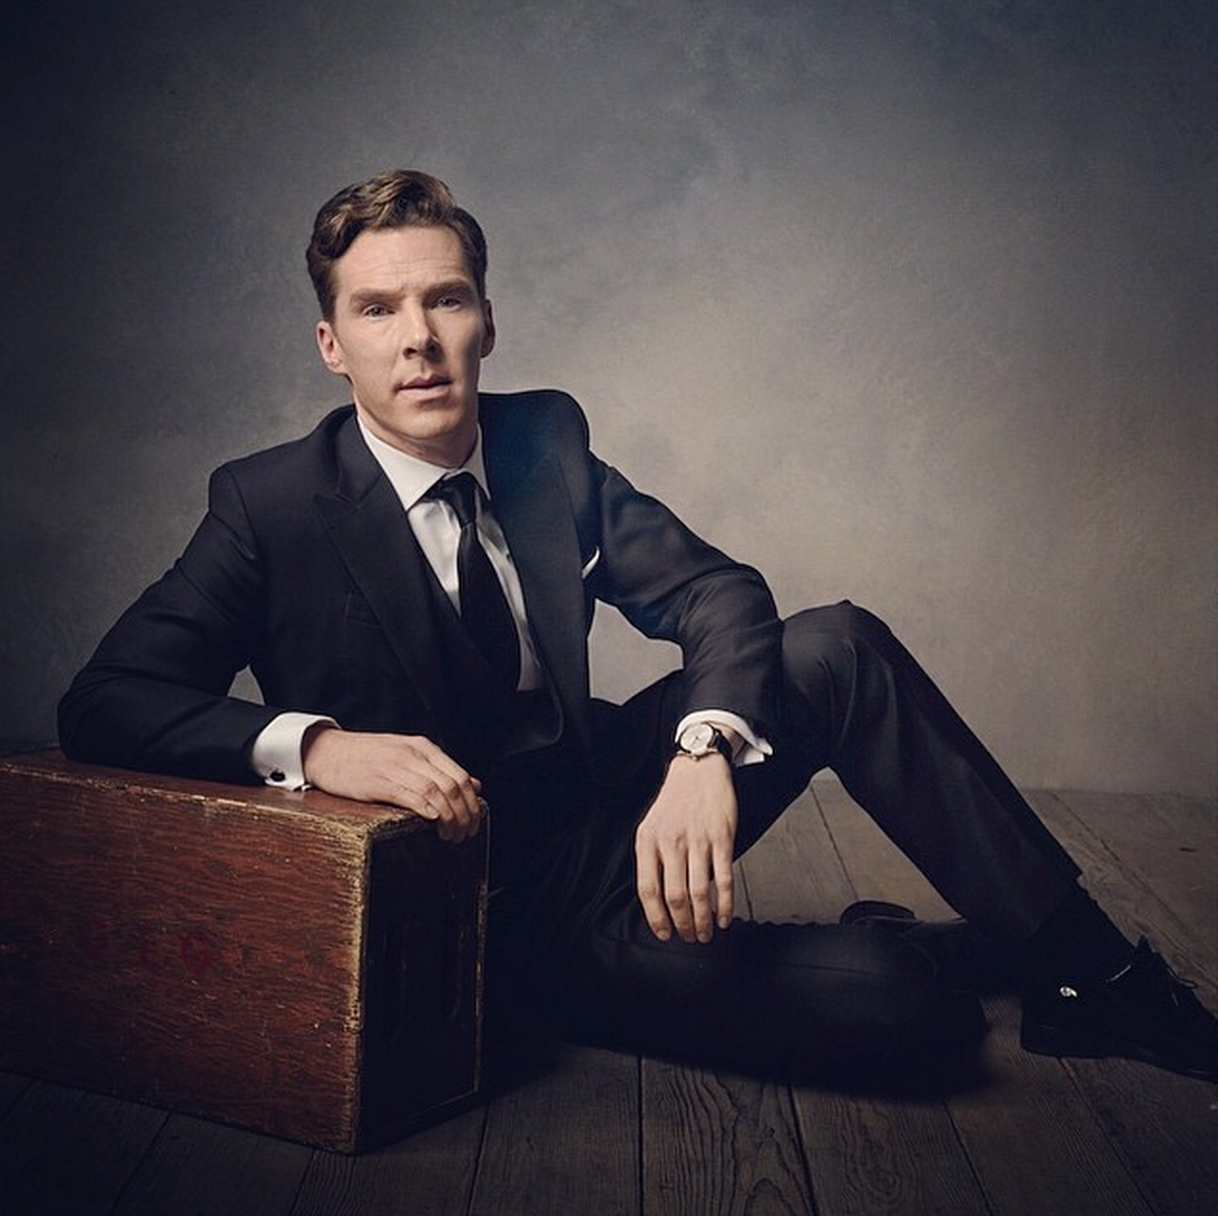 Benedict Cumberbatch photographed by @mark_seliger at the 2014 Vanity Fair Oscar party http://t.co/JZzY67e3Nz http://t.co/BsLXvJfJtl